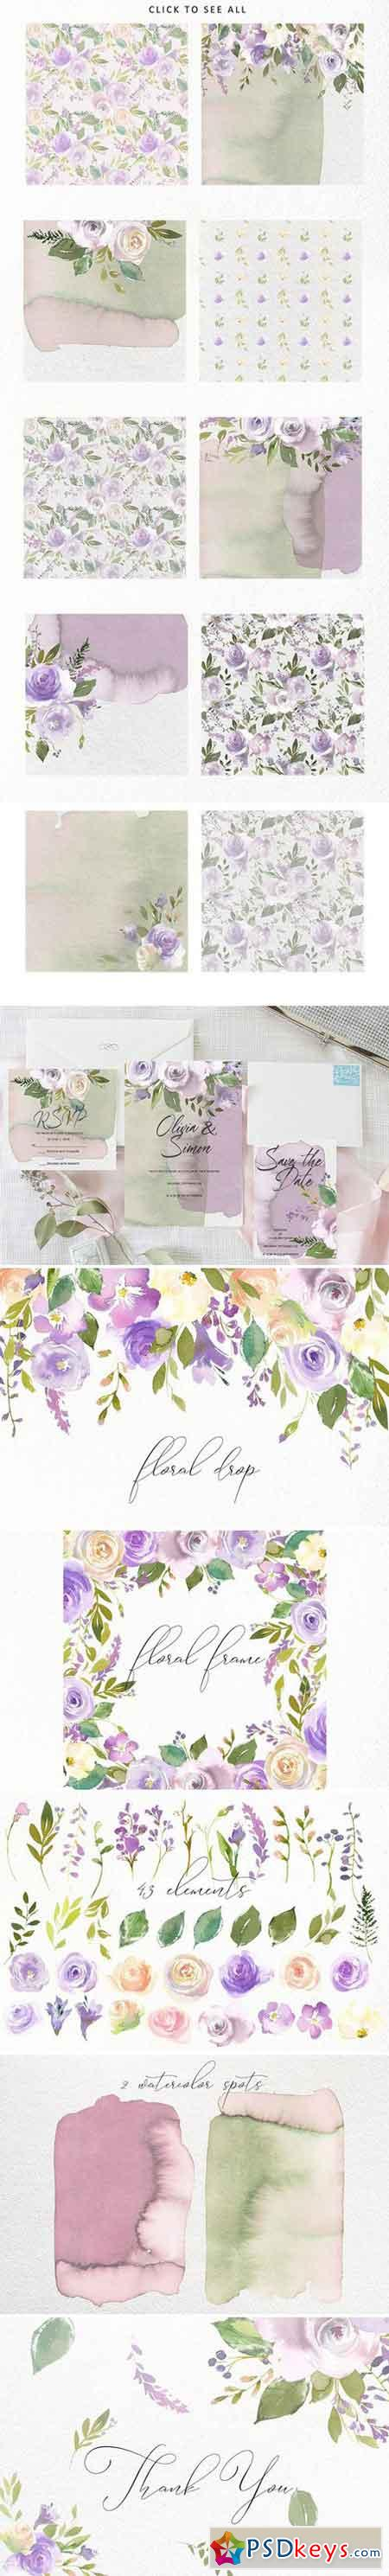 Bouquets de Mariee Watercolor Set 1890363